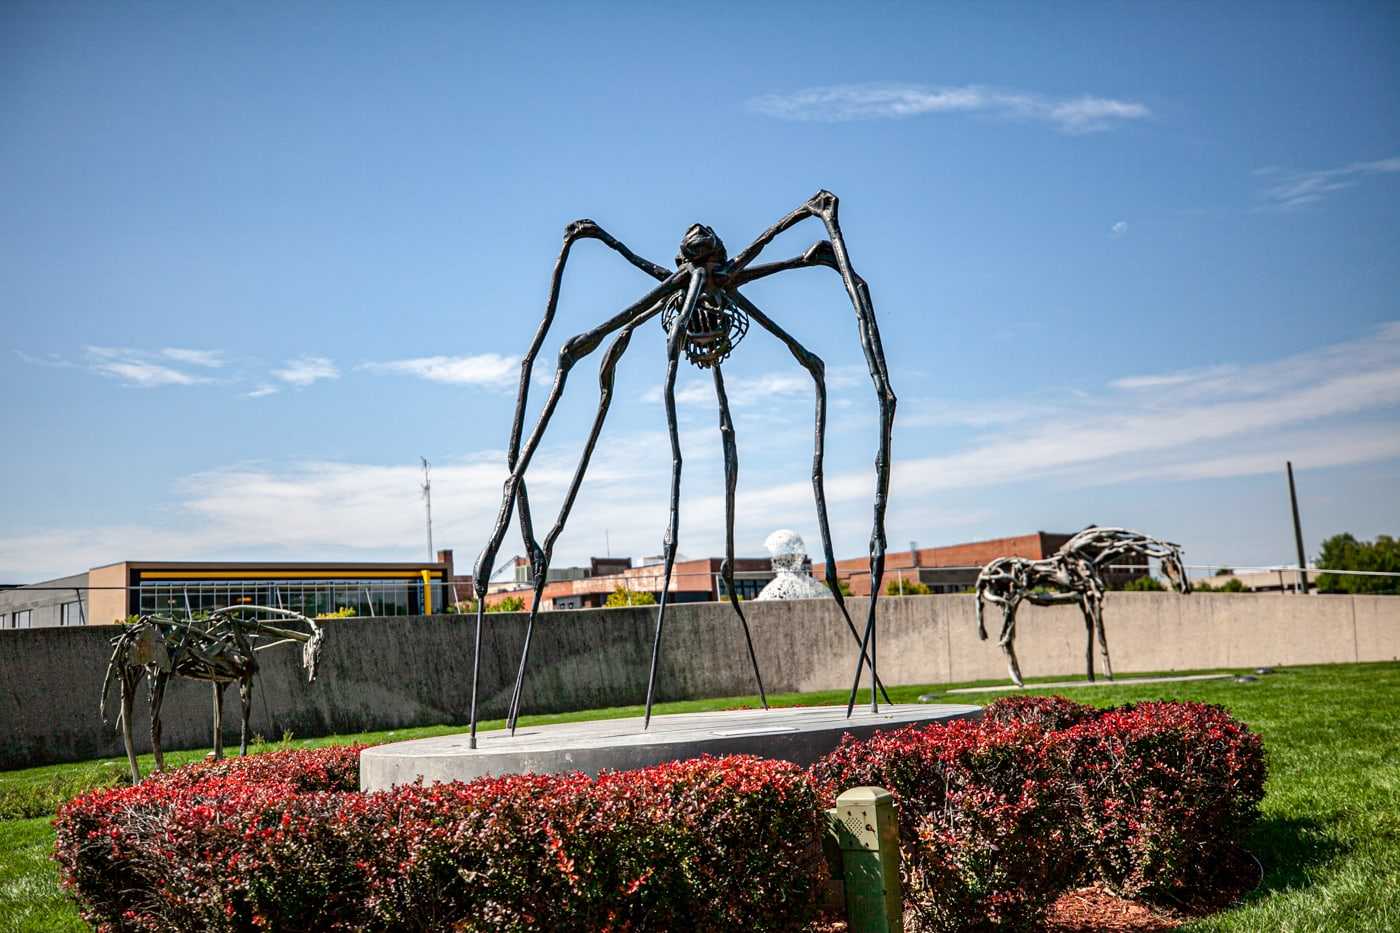 Spider by Louise Bourgeois | Pappajohn Sculpture Park in Des Moines, Iowa